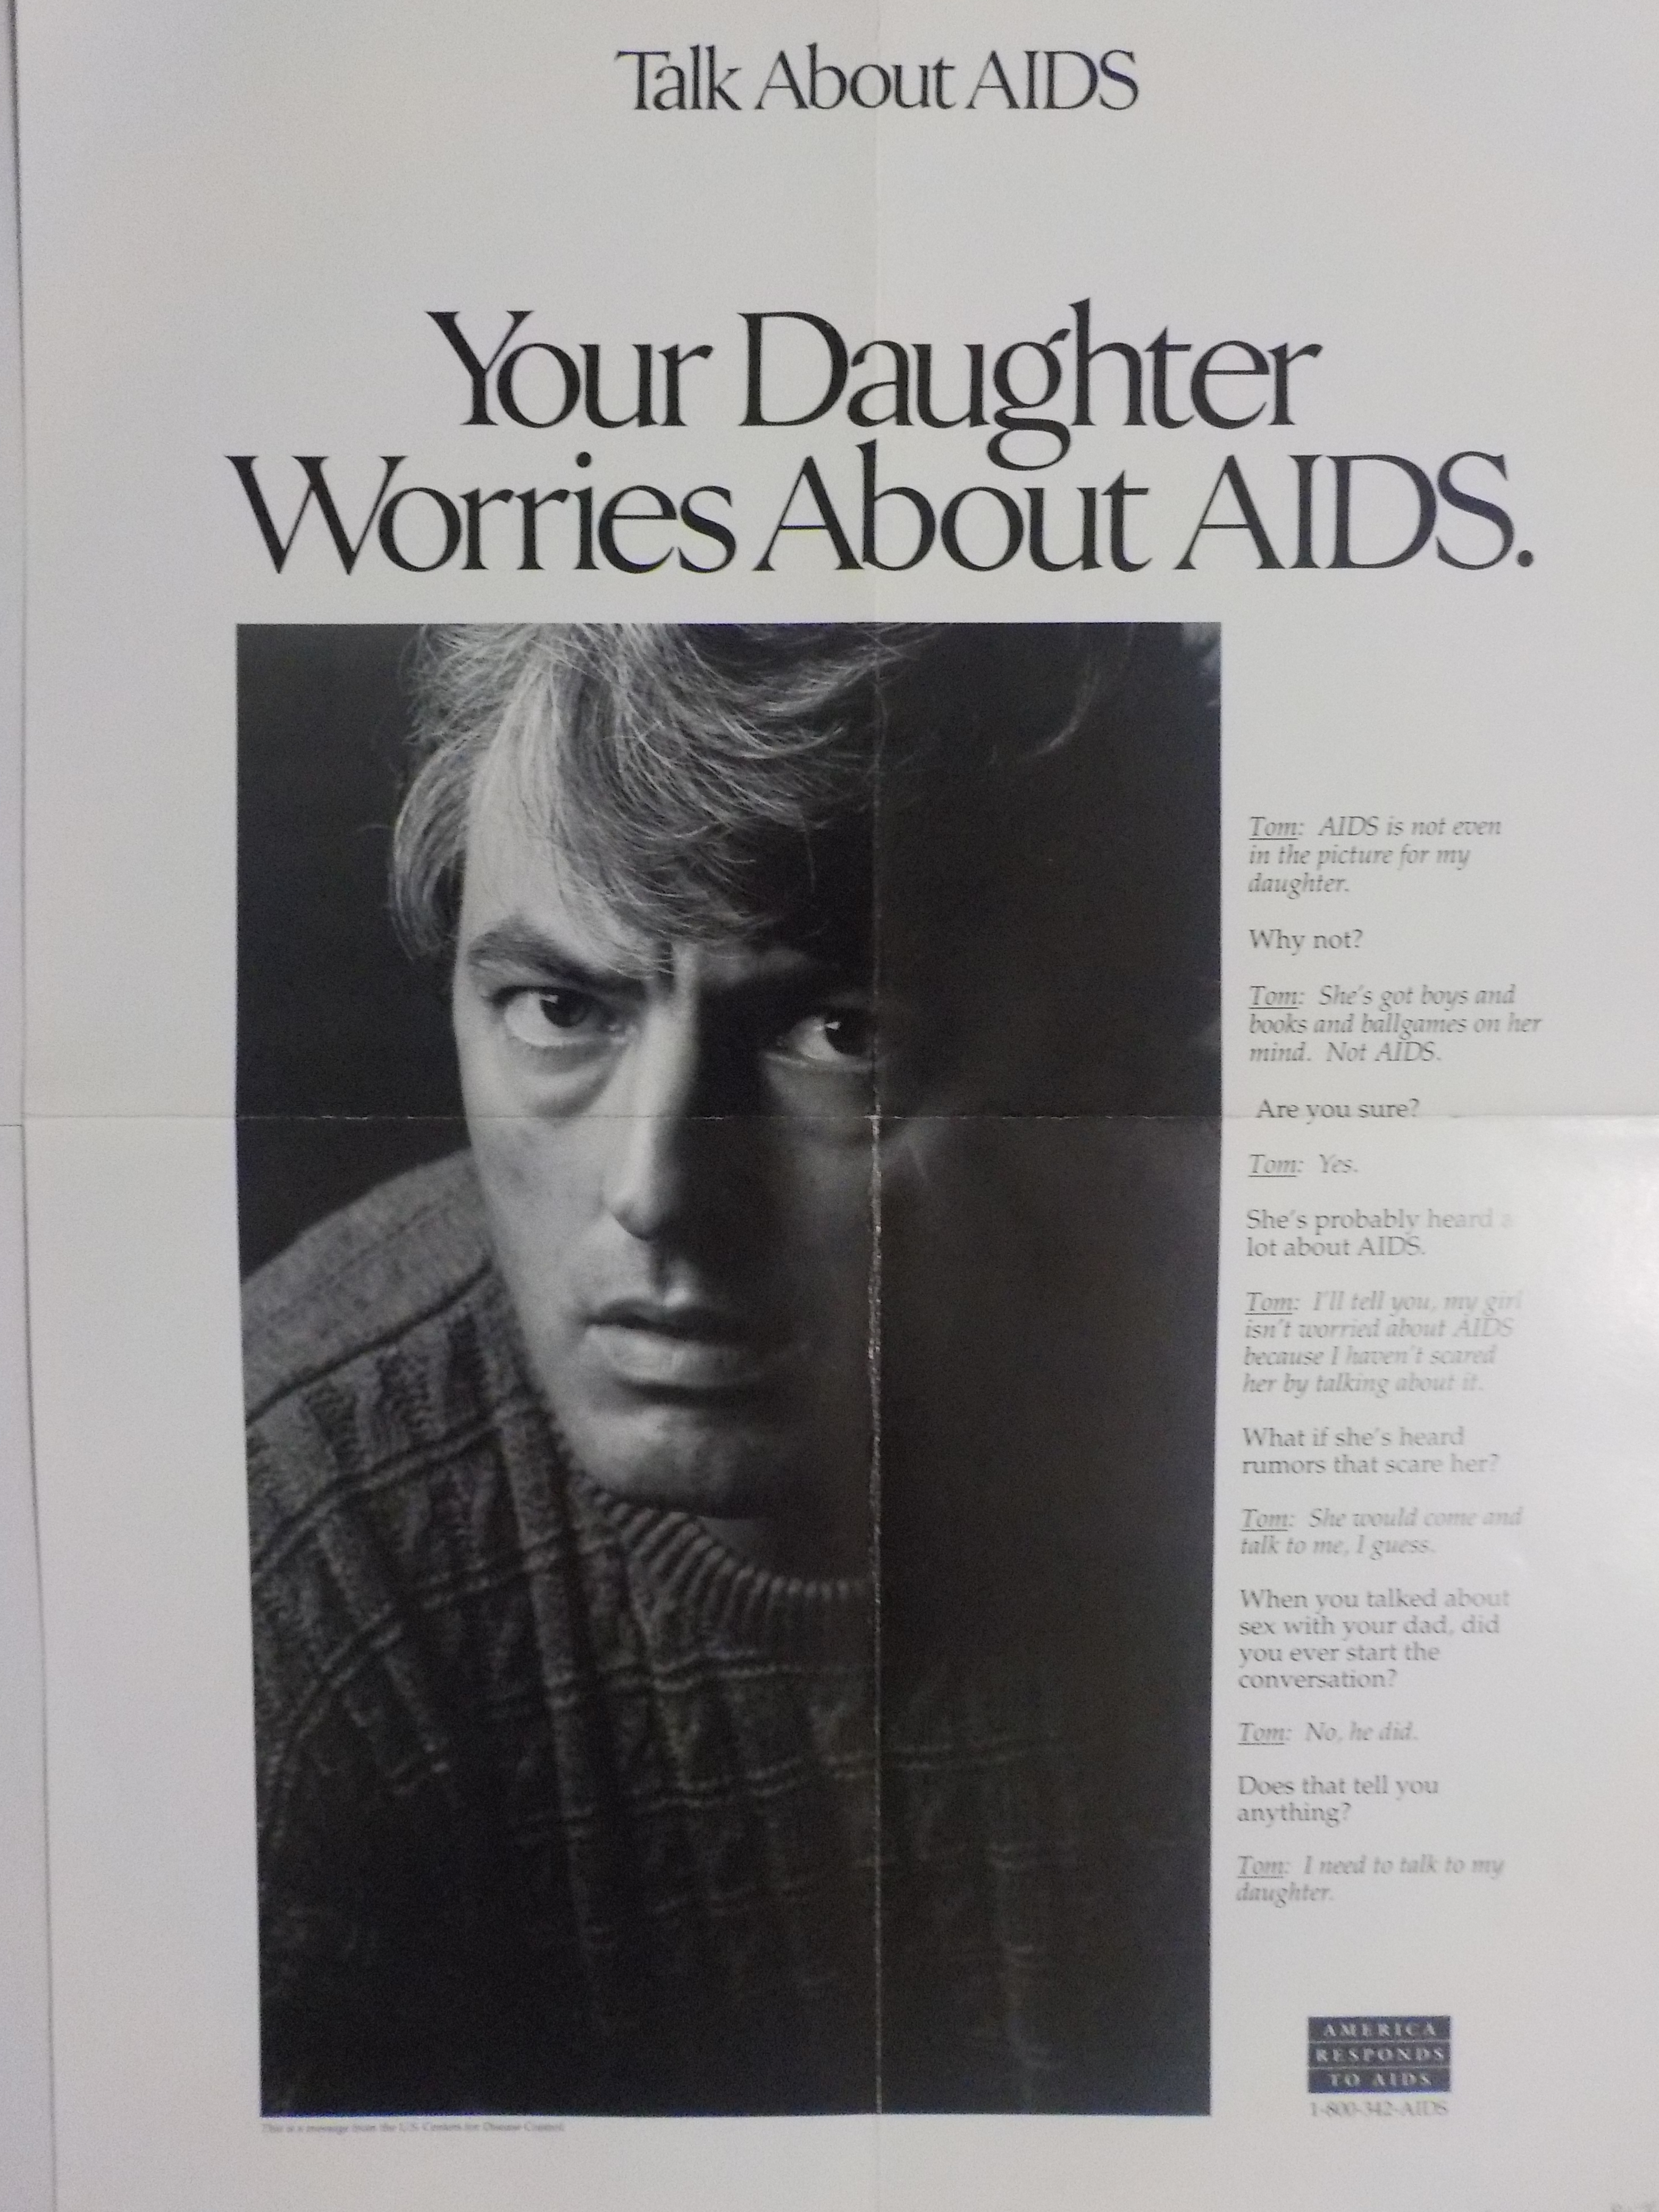 Talk about AIDS, Your daughter worries about AIDS.